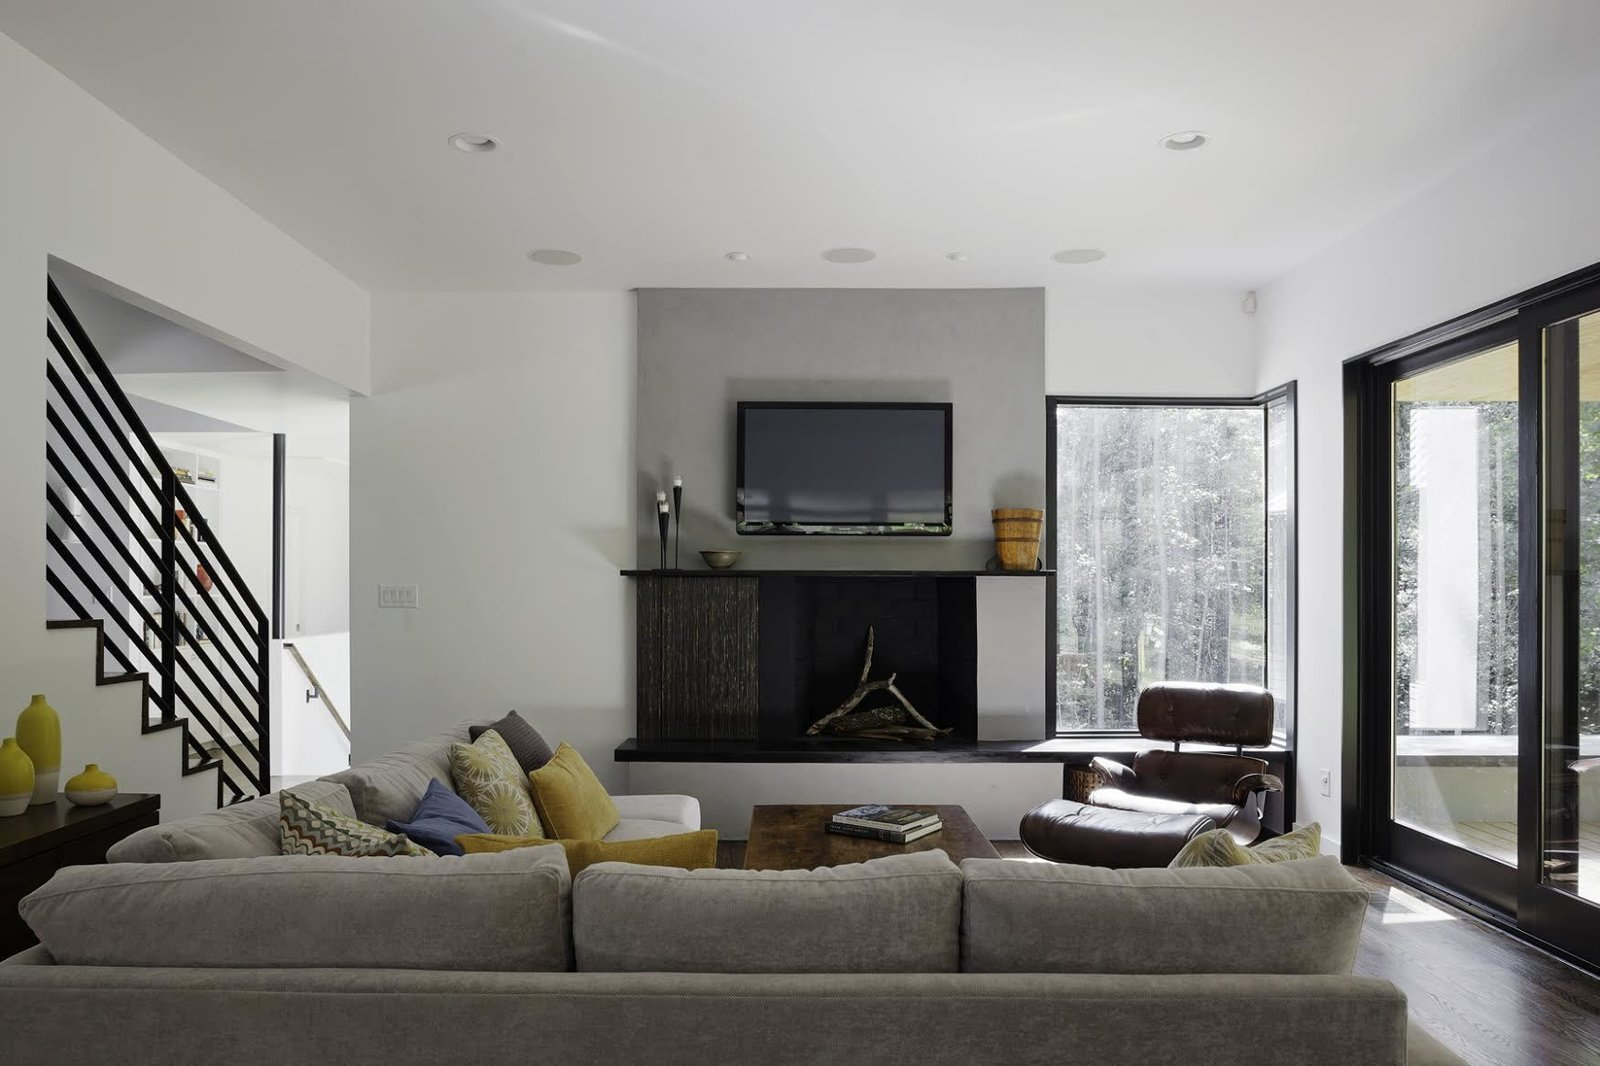 """Living Room, Chair, Standard Layout Fireplace, and Sofa """"We had to take into consideration that this young family was going to be living on a viable farm,"""" says interior designer Kris Ozburn of Second Mile Design. """"So, selecting furniture that was practical but had good design was a priority."""" Ozburn chose pieces like the sectional sofa from Precedent that felt timeless and modern.  The Farmhouse by Kelly Dawson"""